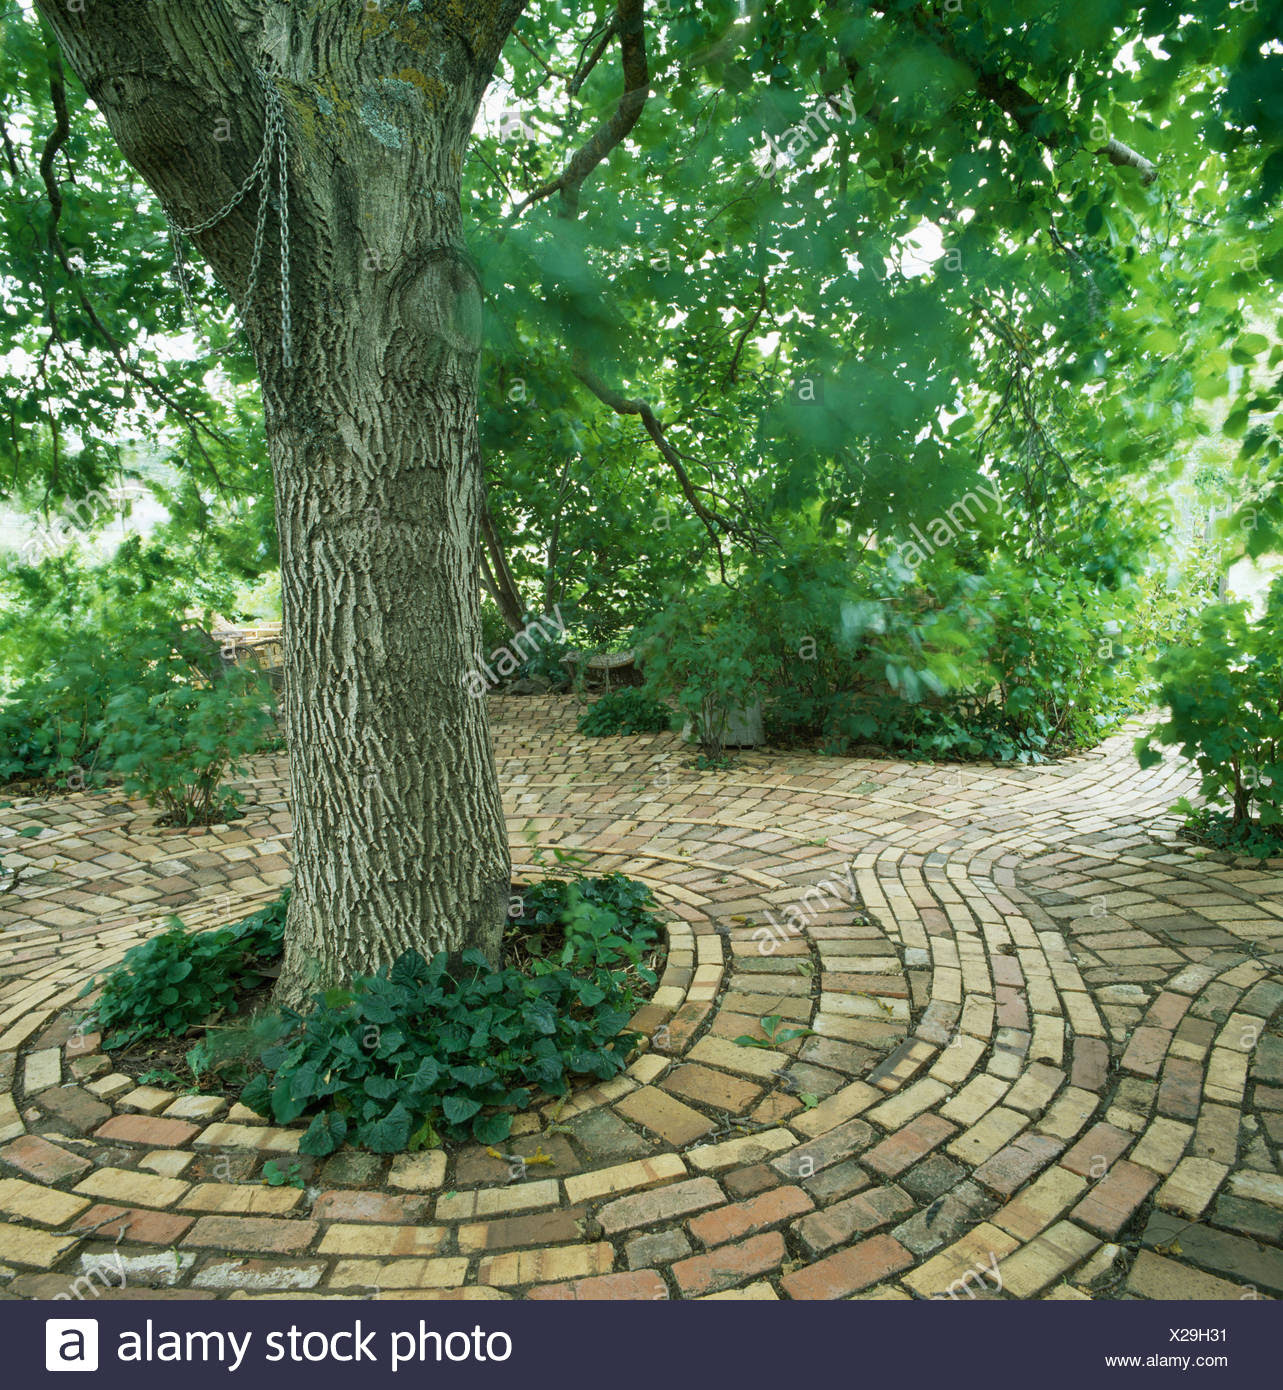 large tree in circular brick paving in country garden in summer X29H31